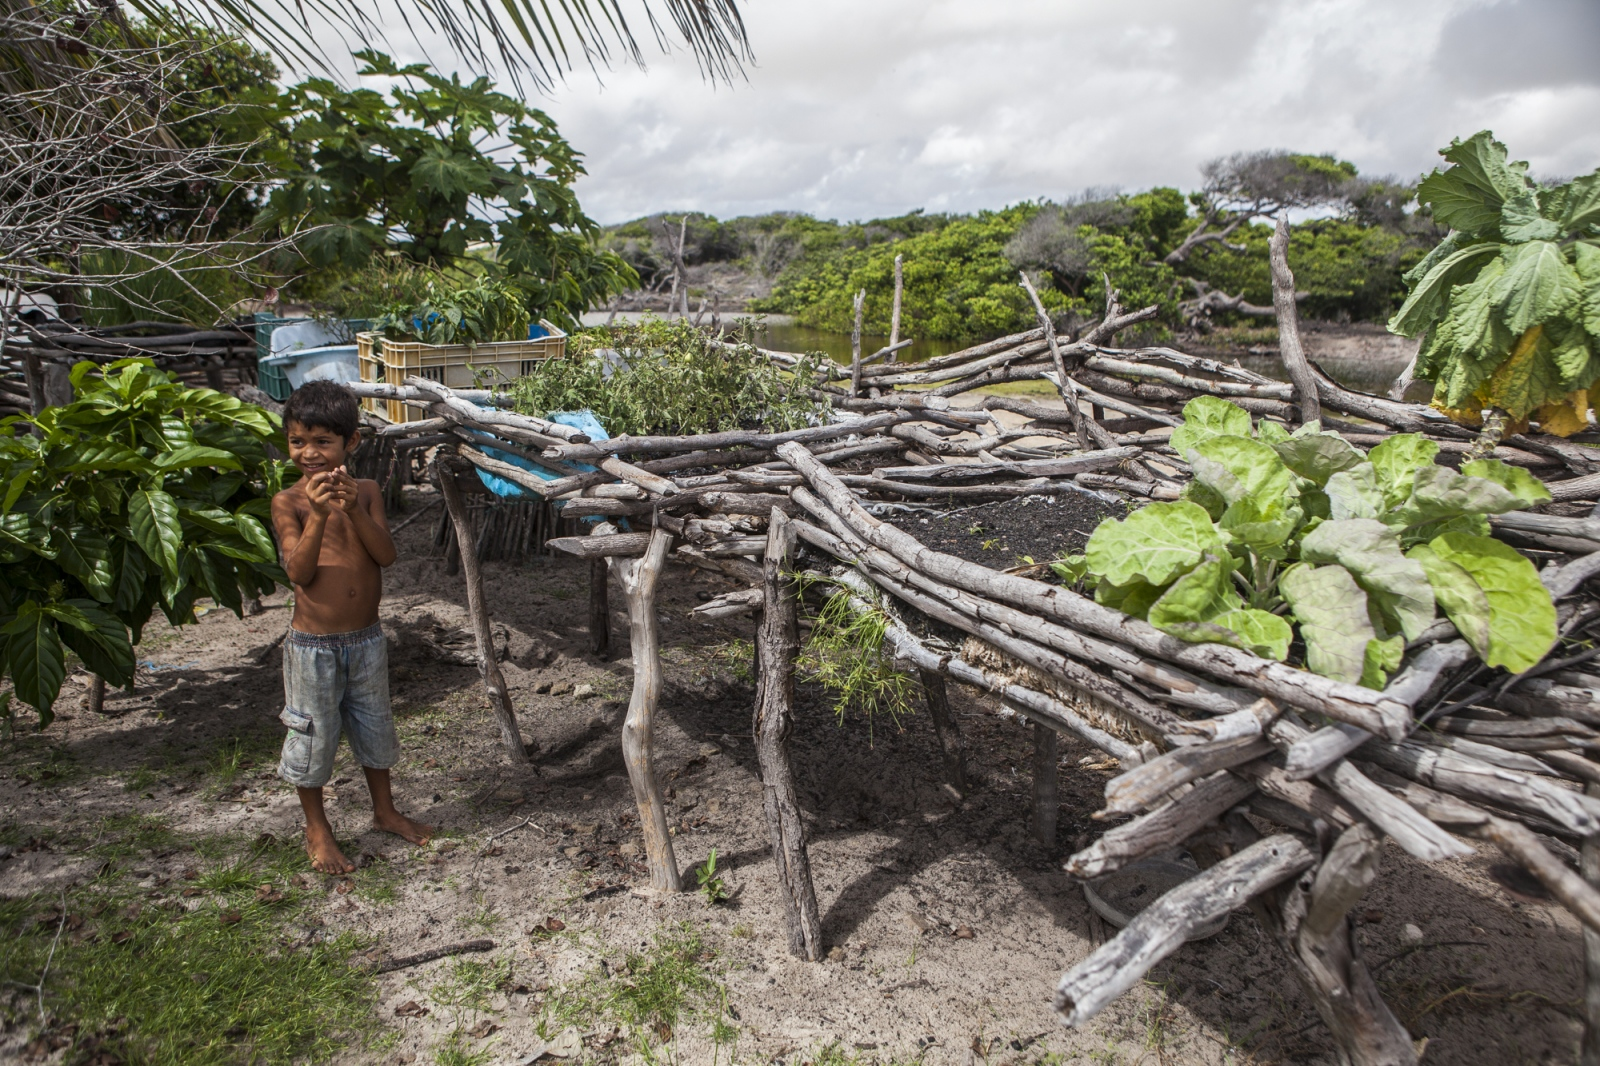 Julião Brito, 7, plays next to the small garden use to farm a few vegetables. The locals of Queimada dos Britos don't grow many plots of land since they are afraid of the accelerating advance of the dunes that have already covered several houses.